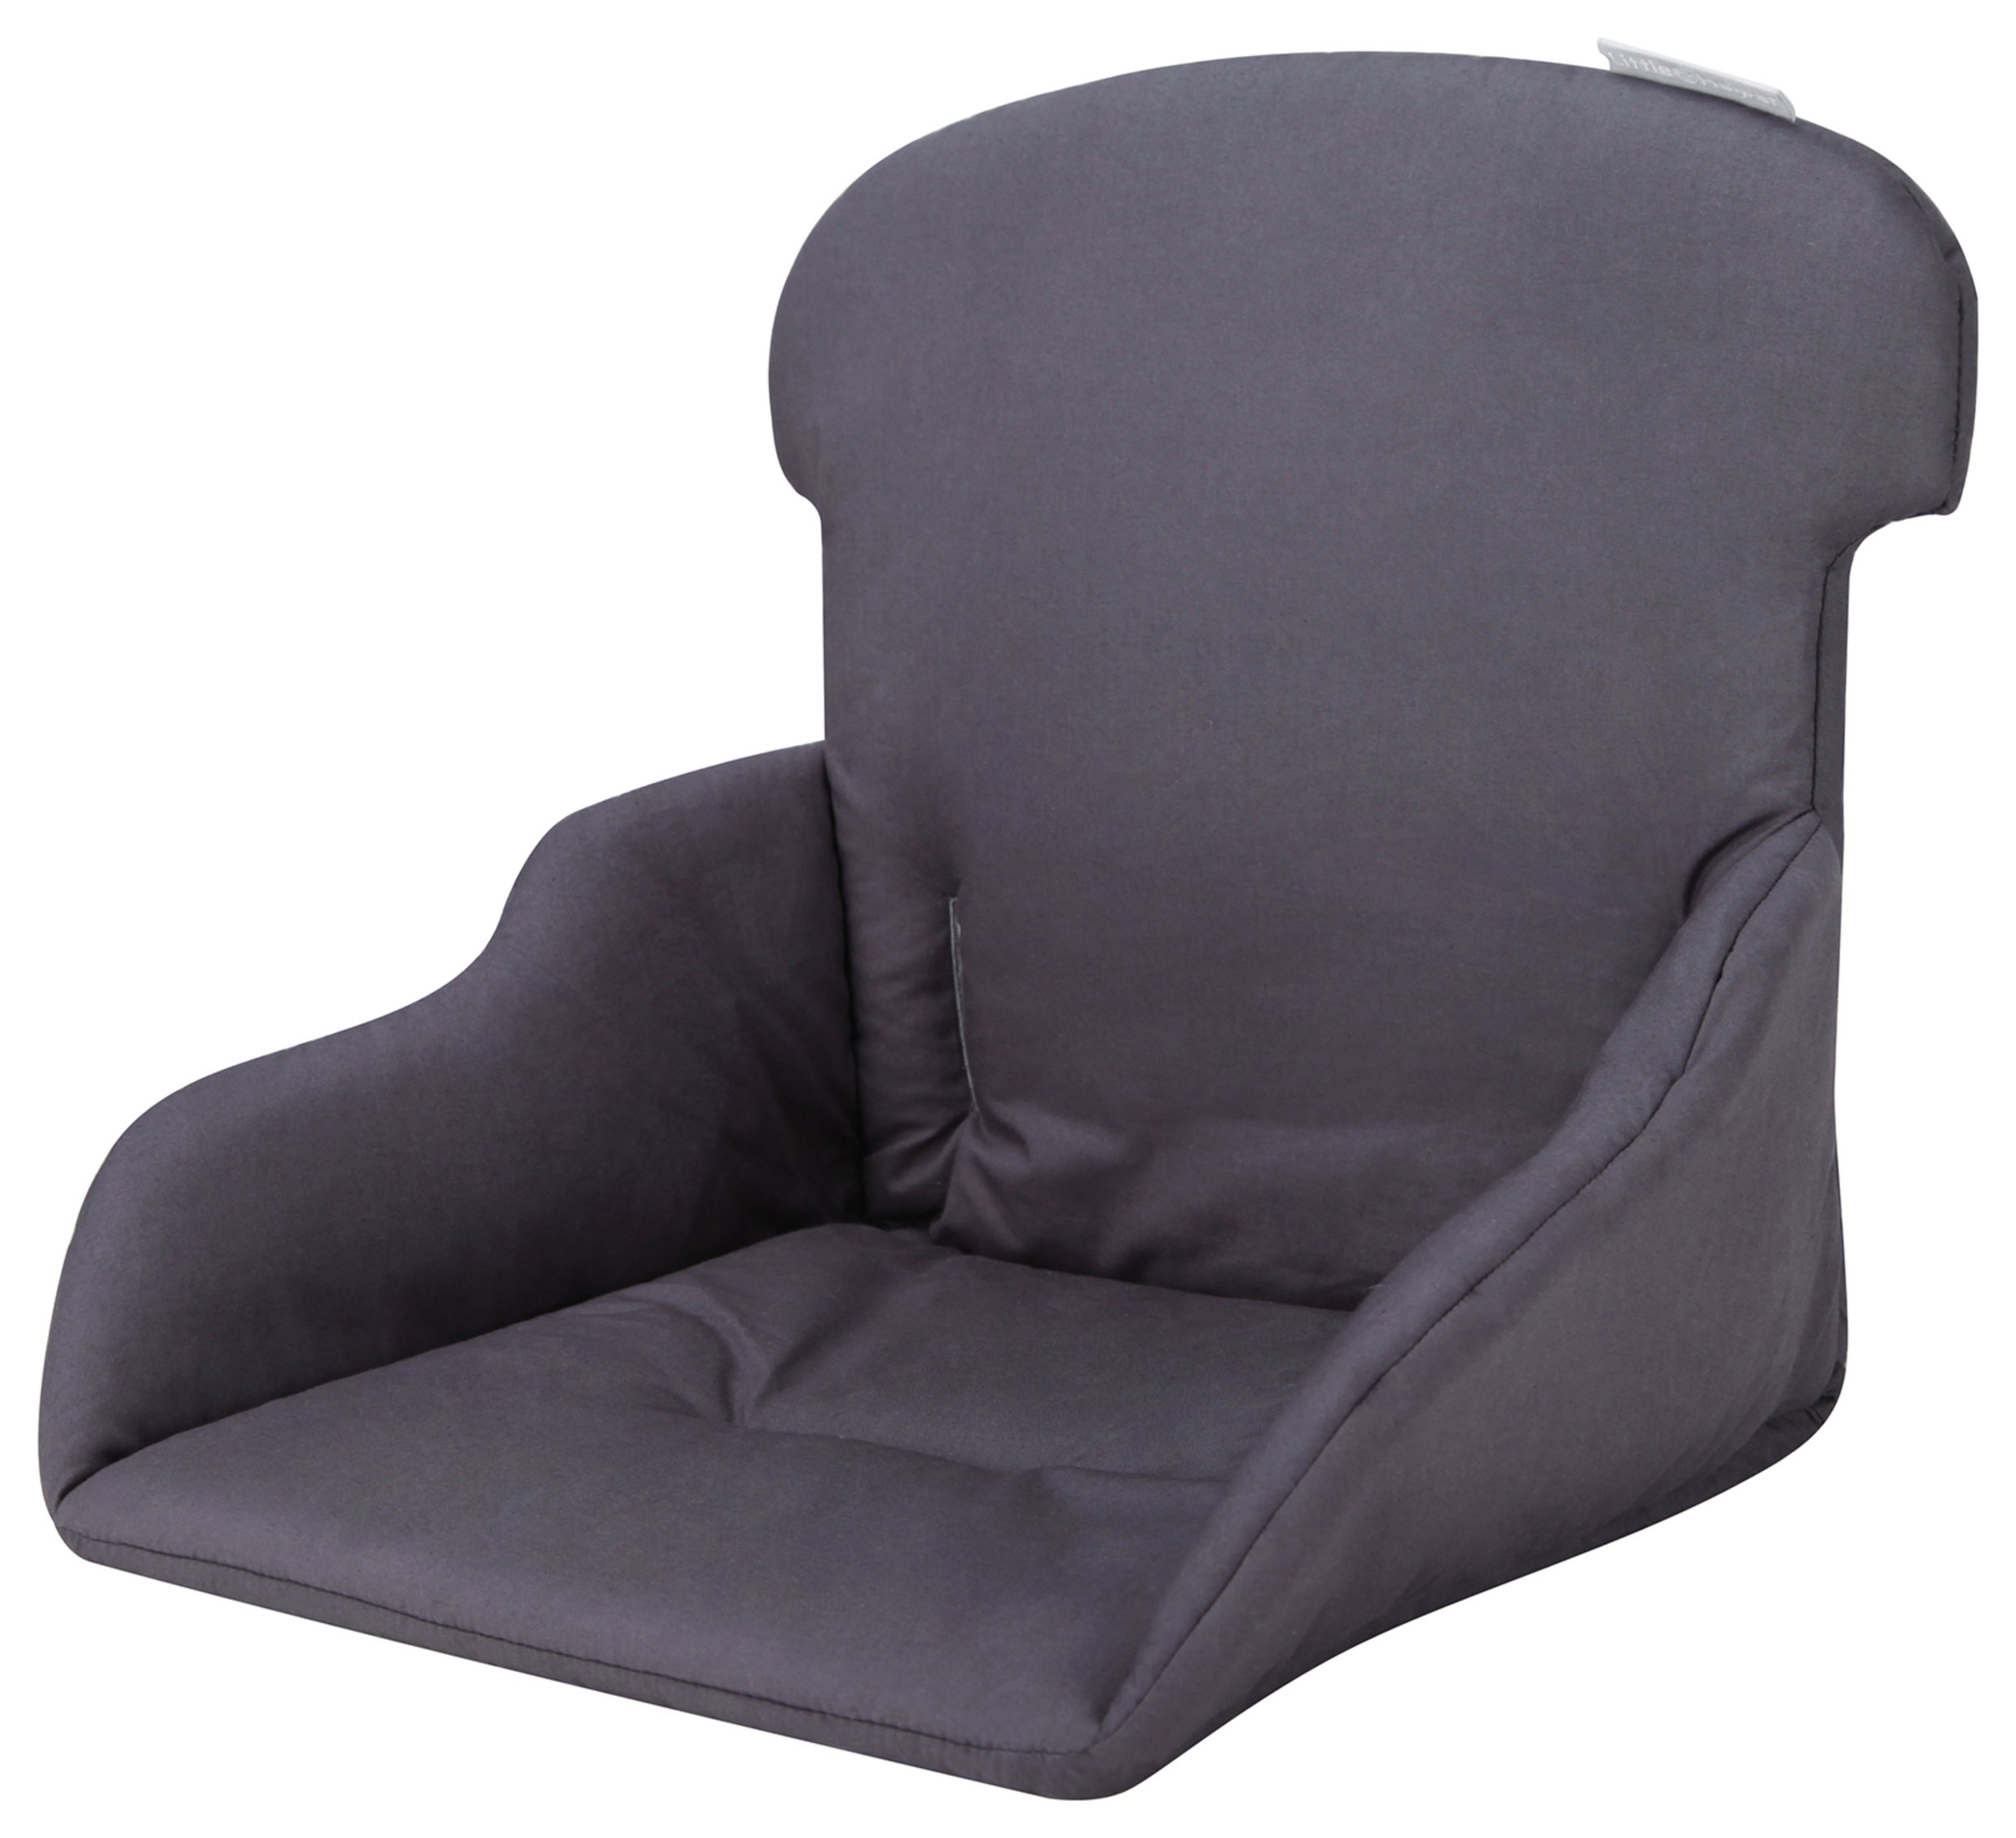 Image of Little Helper FunPod High Chair Cushion - Charcoal